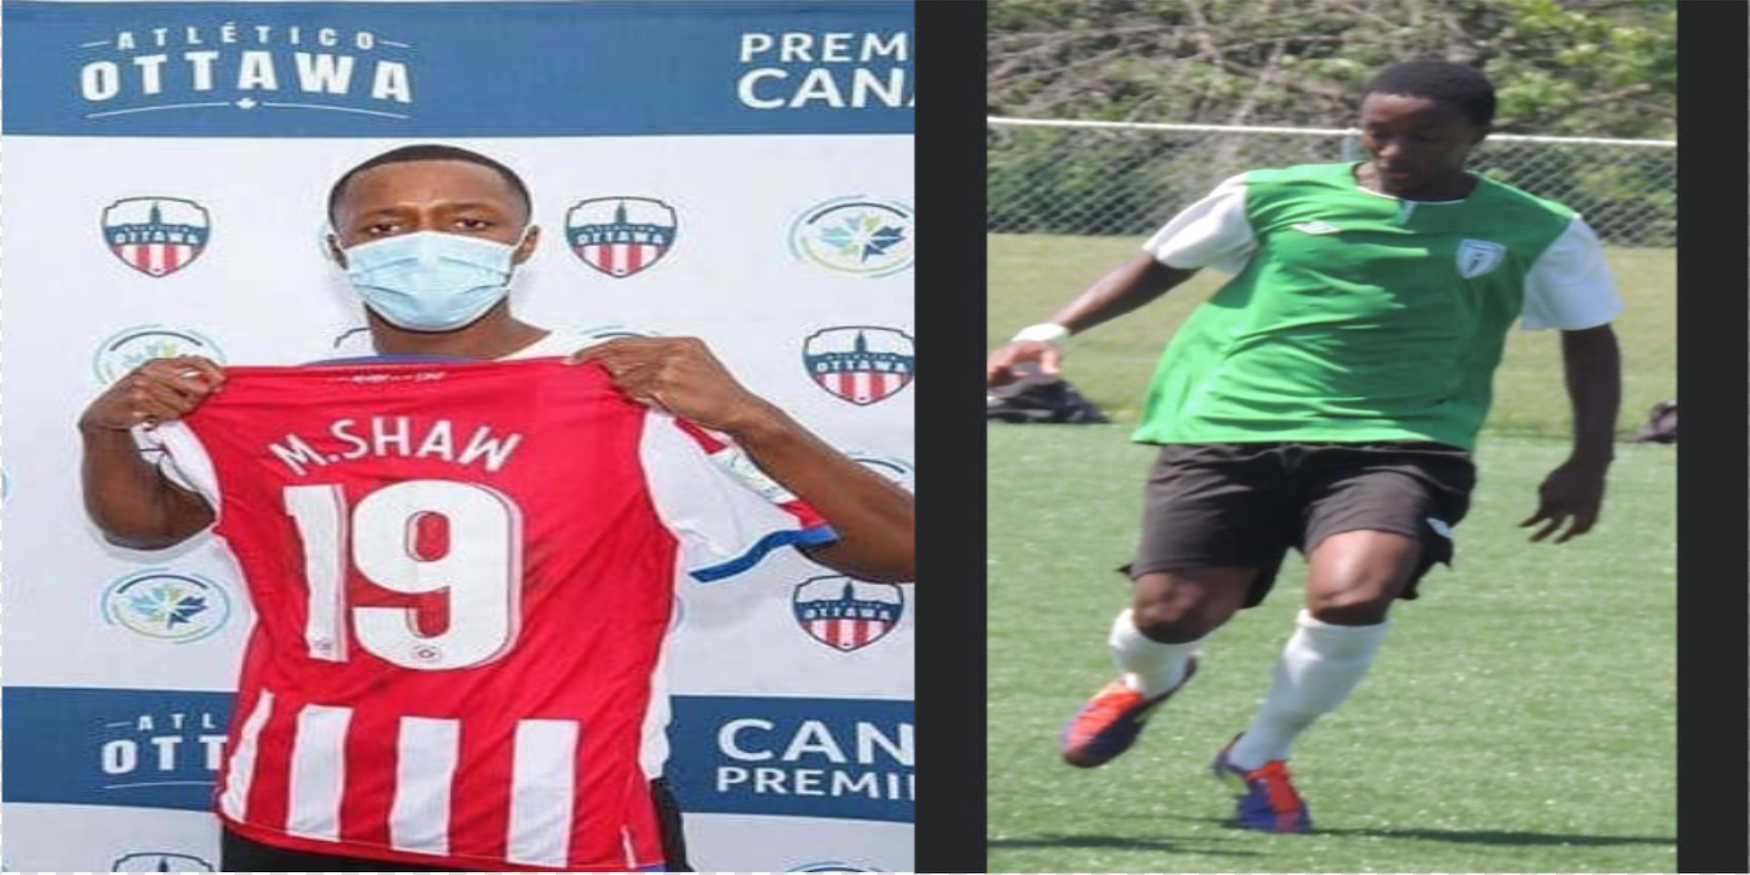 Former Power FC Player Malcolm Shaw Signs with Atletico Ottawa of the Canadian Premier League